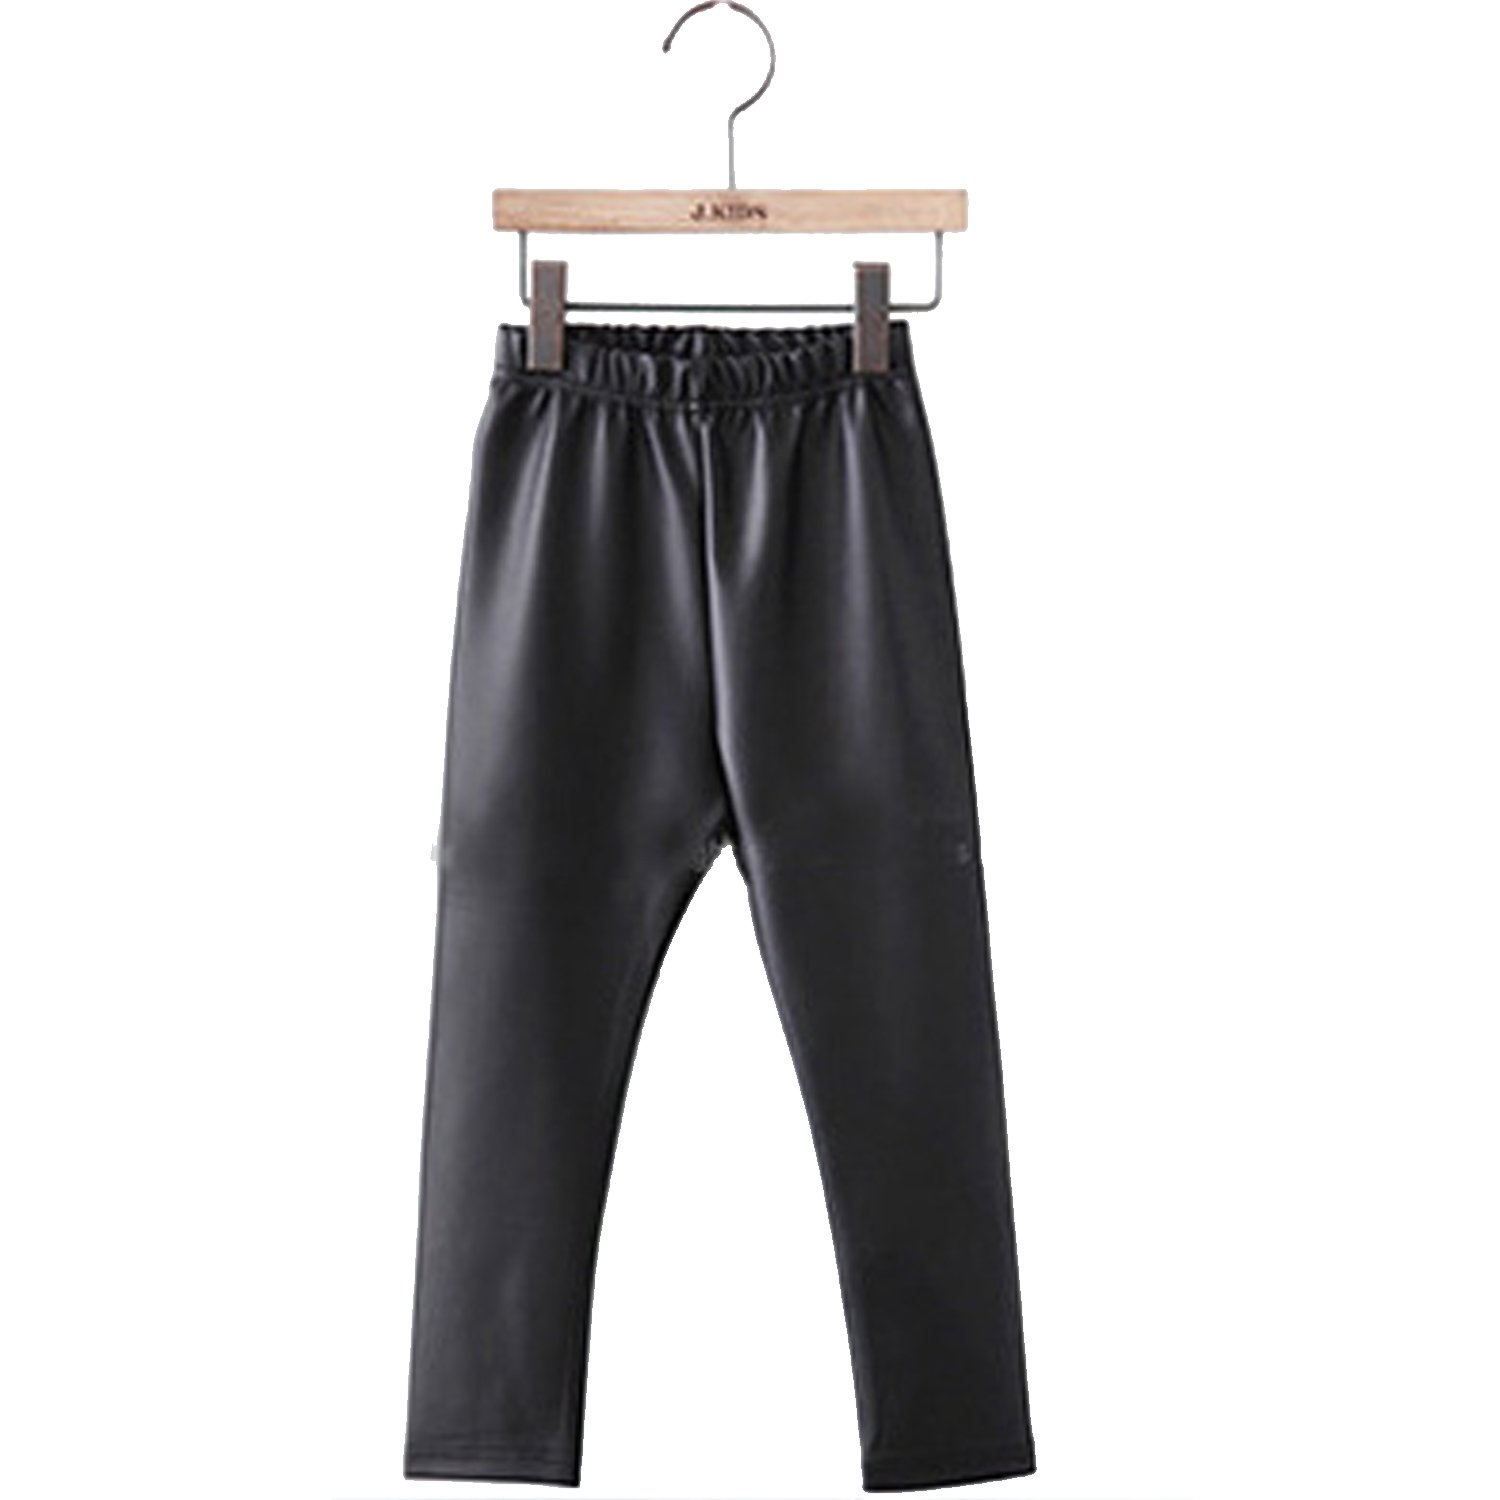 Tulucky Girls Stretchy Faux Leather Legging Teens Pants(darkblue,Tag140) by Tulucky (Image #5)